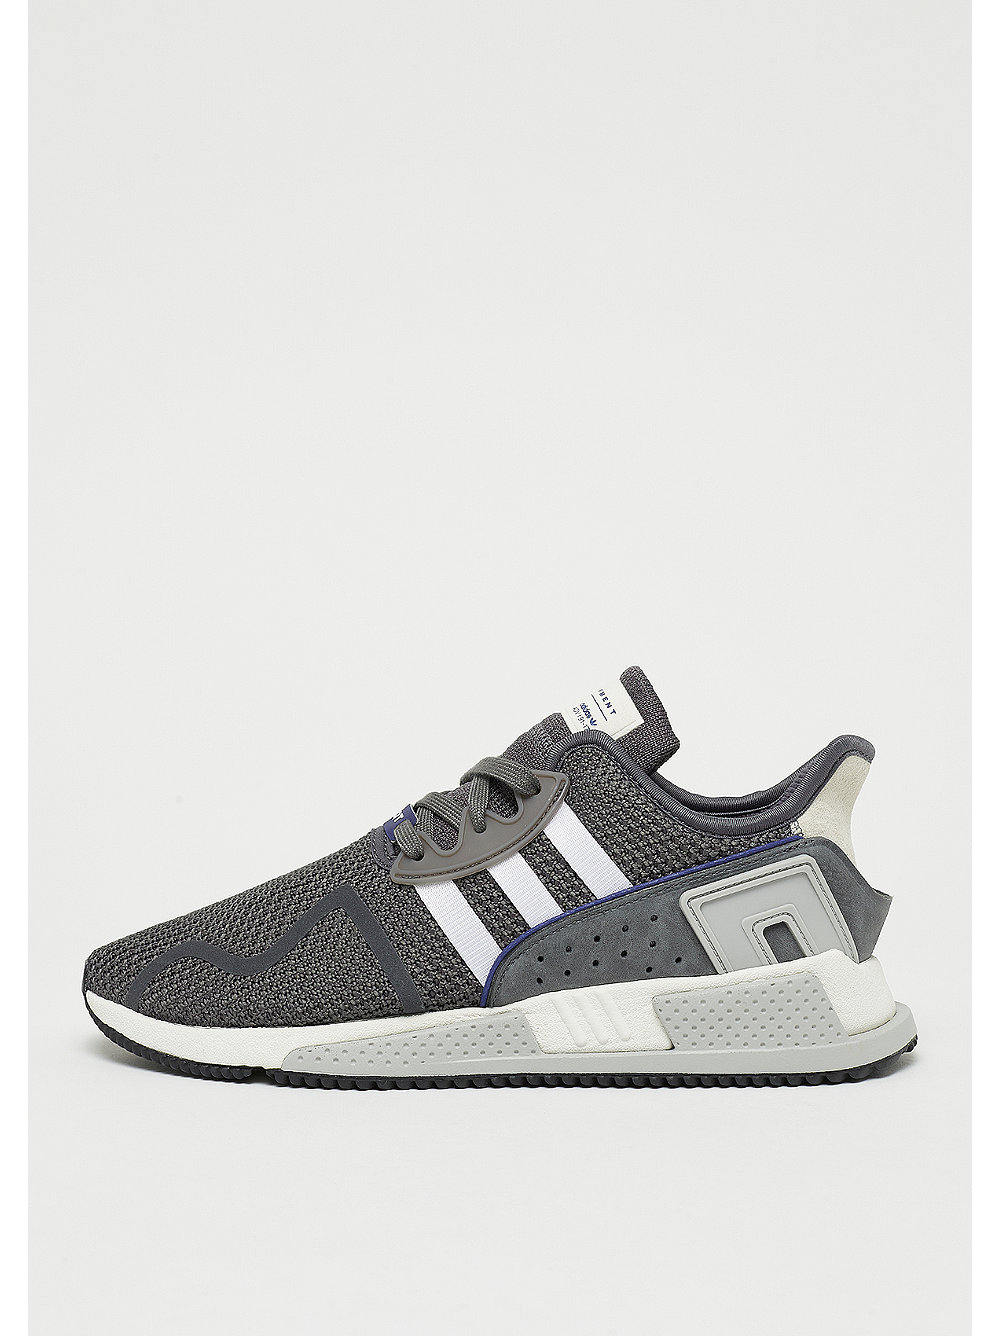 separation shoes 465e8 db0ac adidas EQT Cushion ADV grey five im SNIPES Onlineshop - sommerprogramme.de